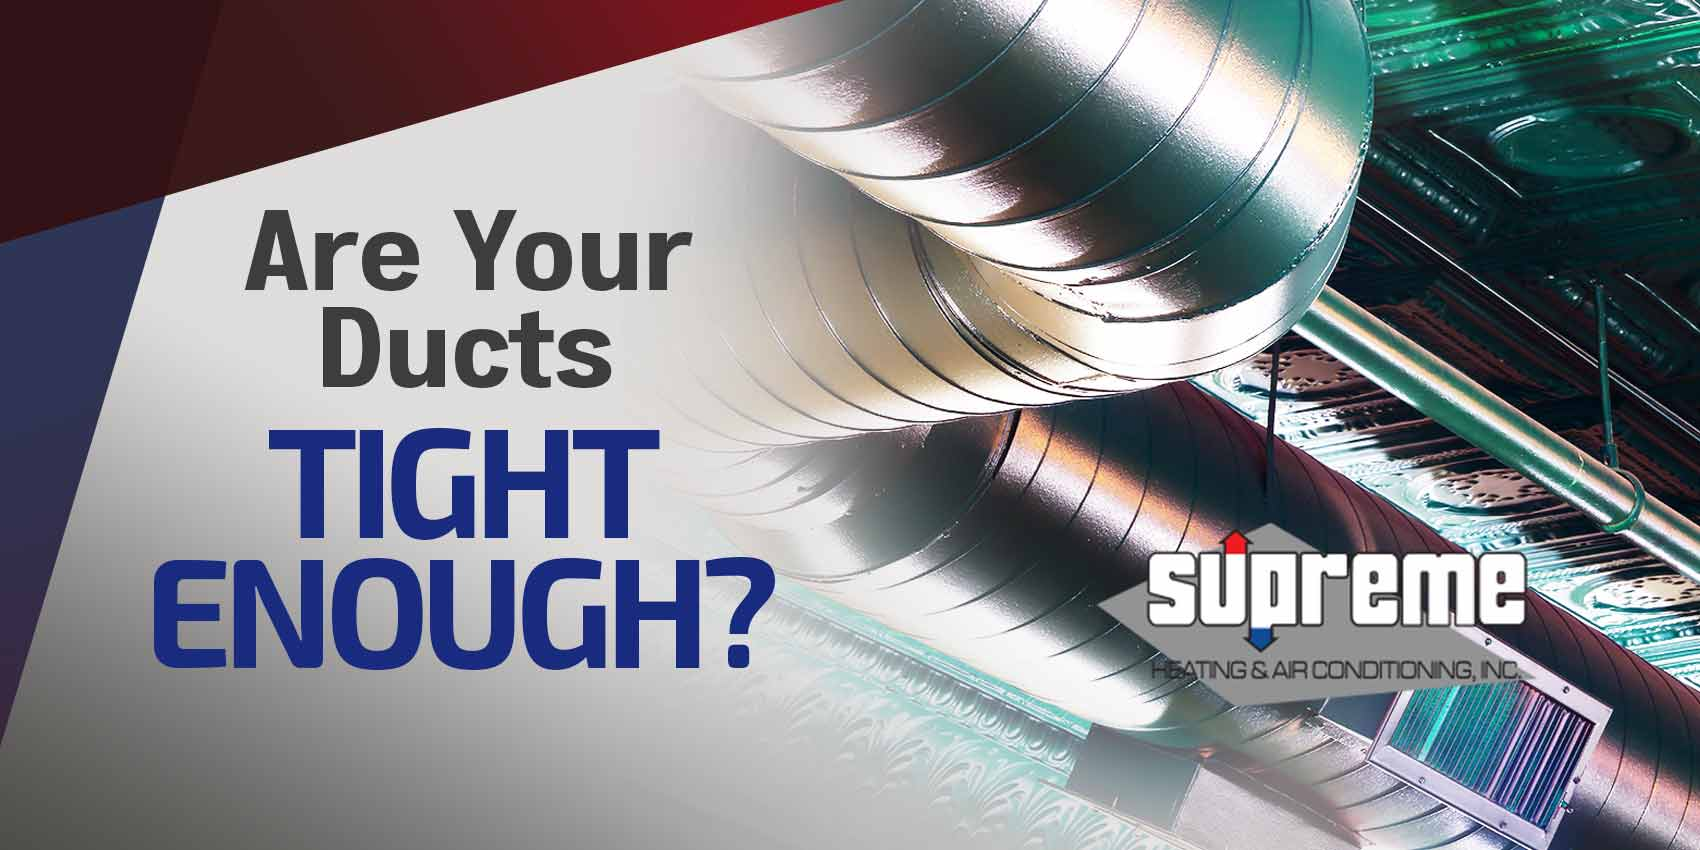 Are Your Ducts Tight Enough?